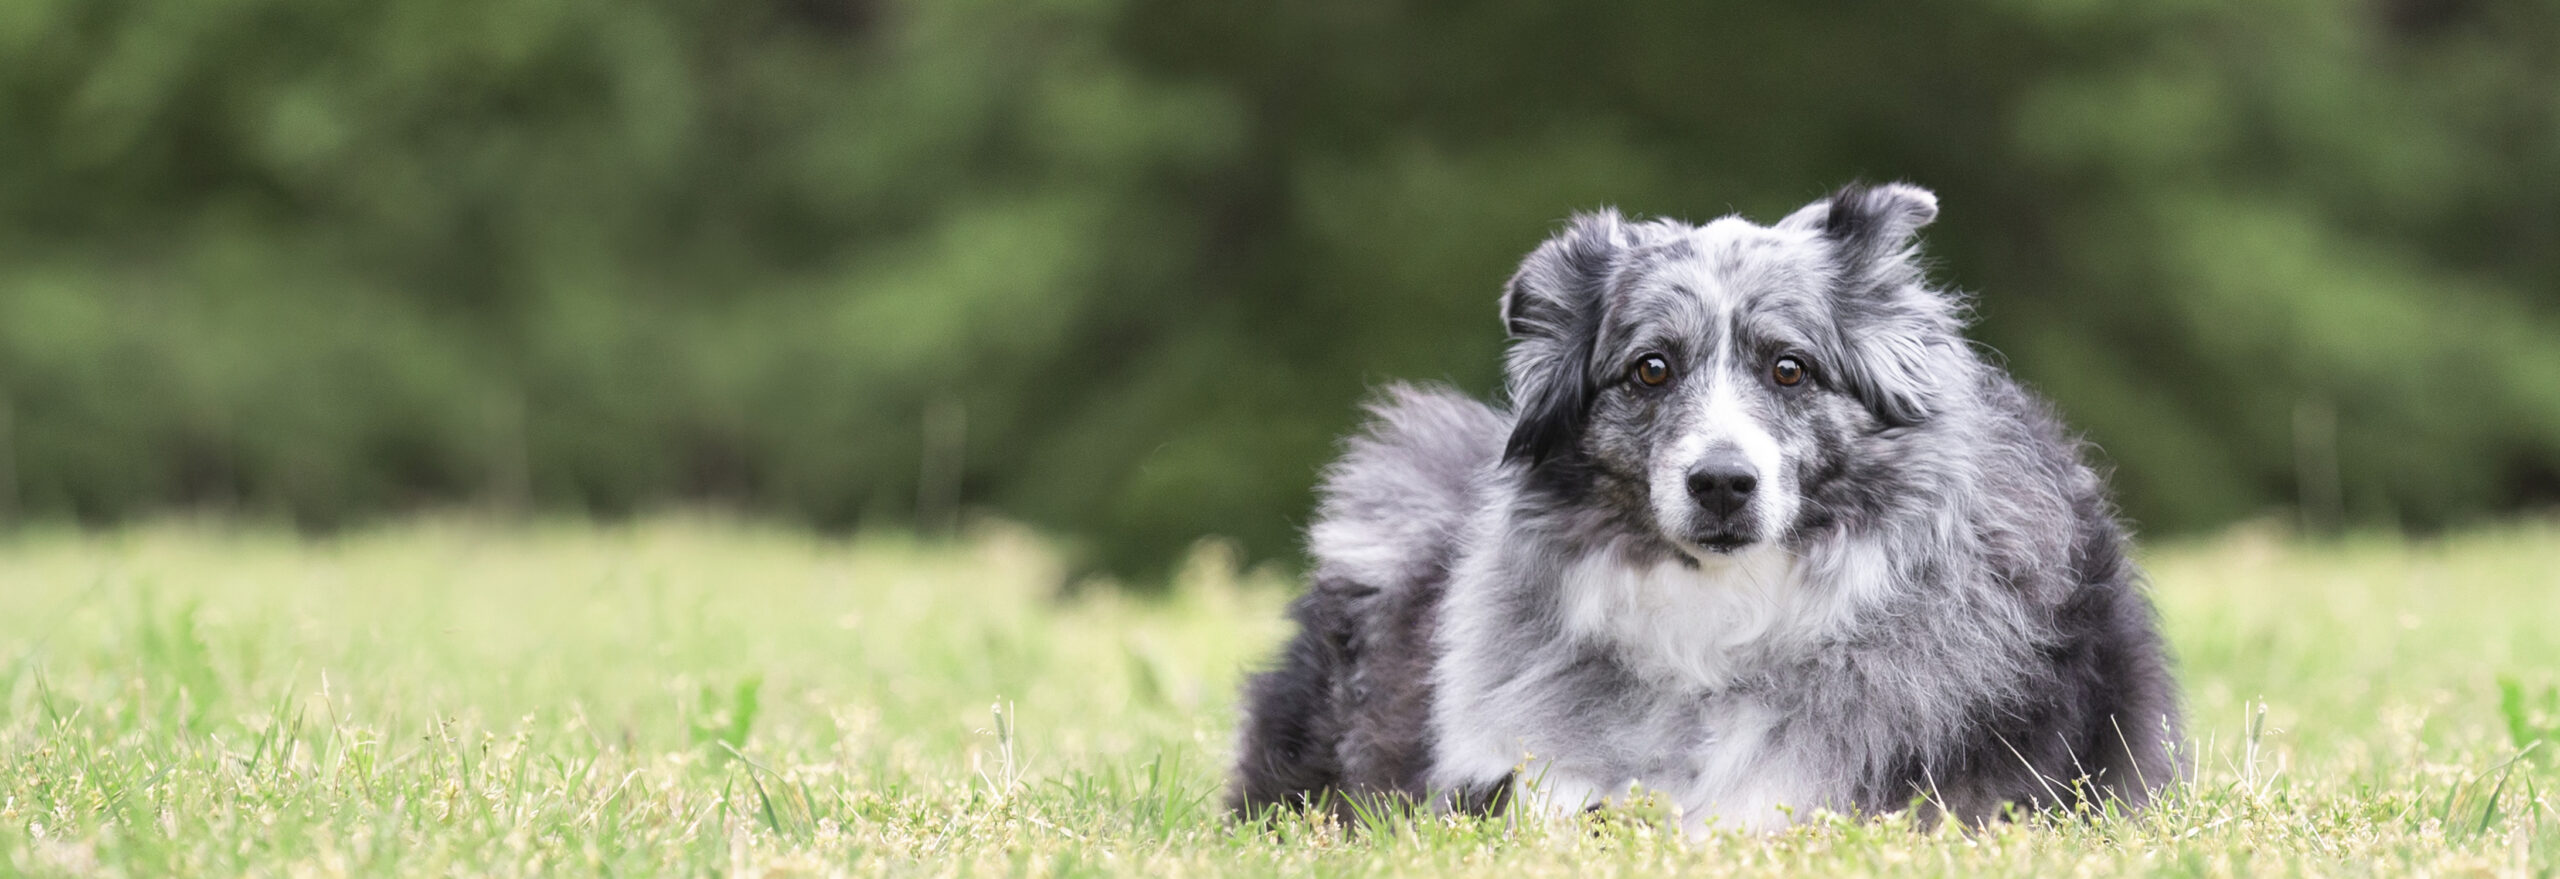 Black Gray and White Long Haired Dog in green grass